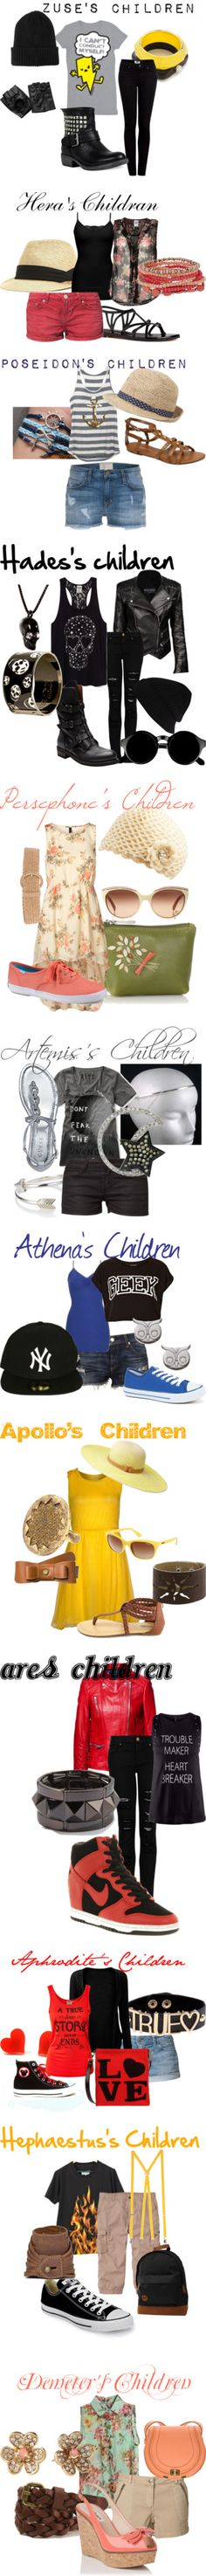 """""""Greek Gods and Godesses"""" by iskbug on Polyvore - 'Zeus' sorry that was bothering me :))"""